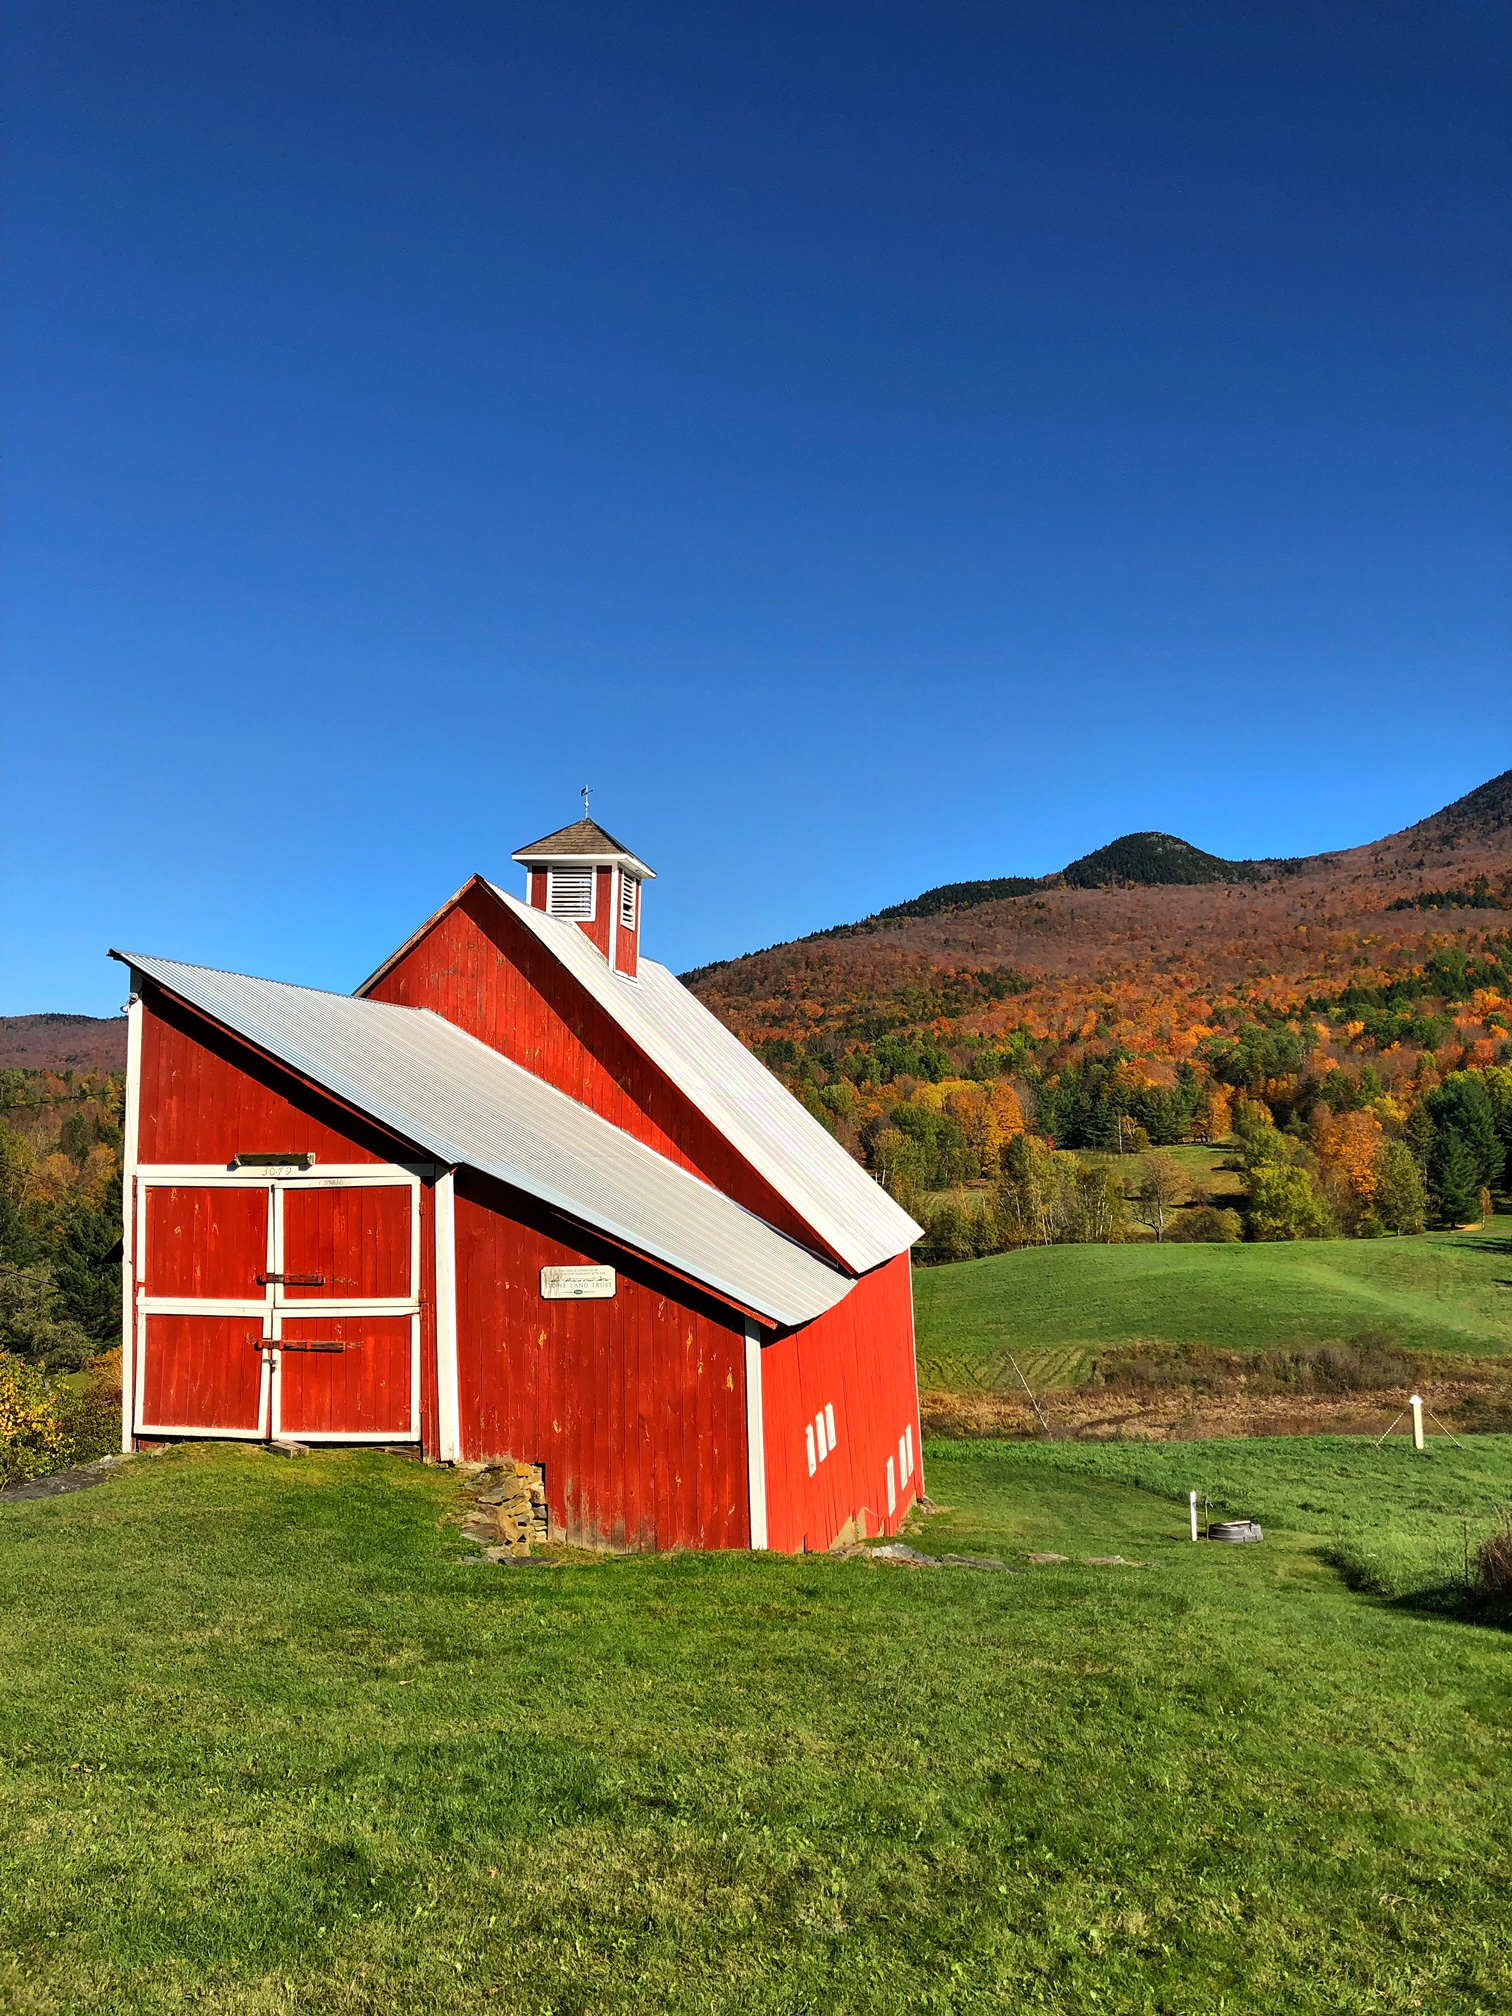 stowe, vermont, the-alyst.com